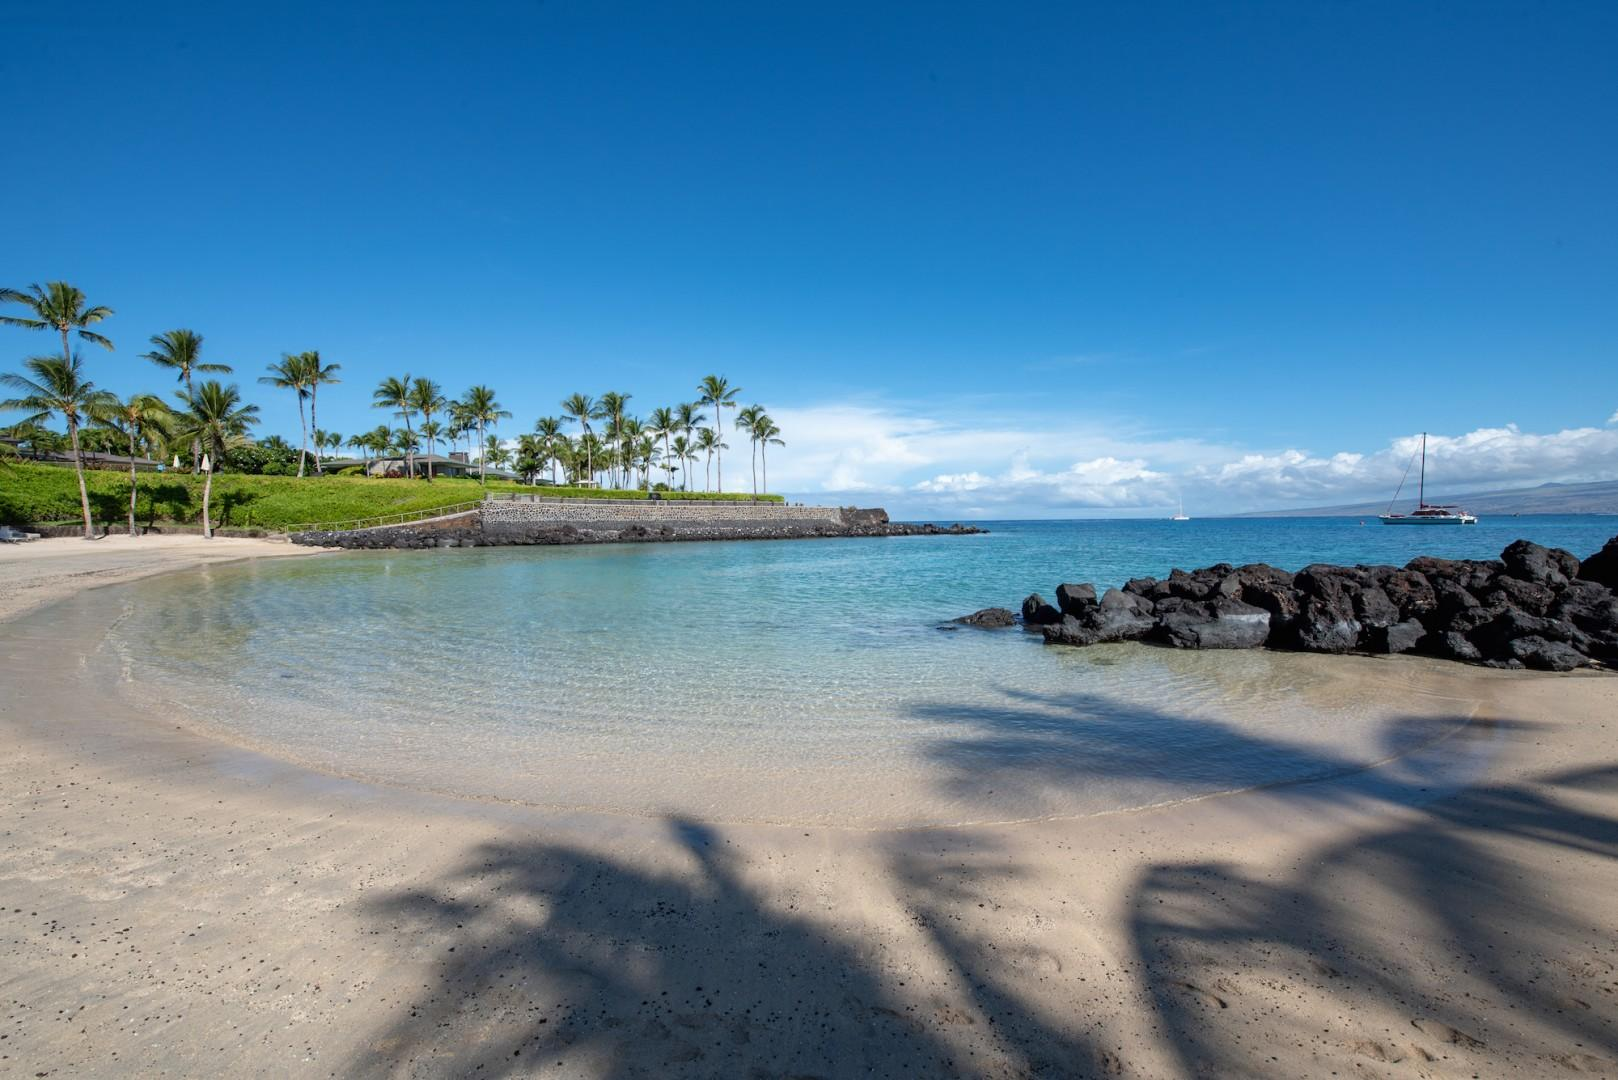 This Kohala Coast vacation home on the Big Island of Hawaii allows easy access (5 minutes drive) to the white sands of magnificent Mauna Lani Beach and the exclusive Mauna Lani Beach Club.